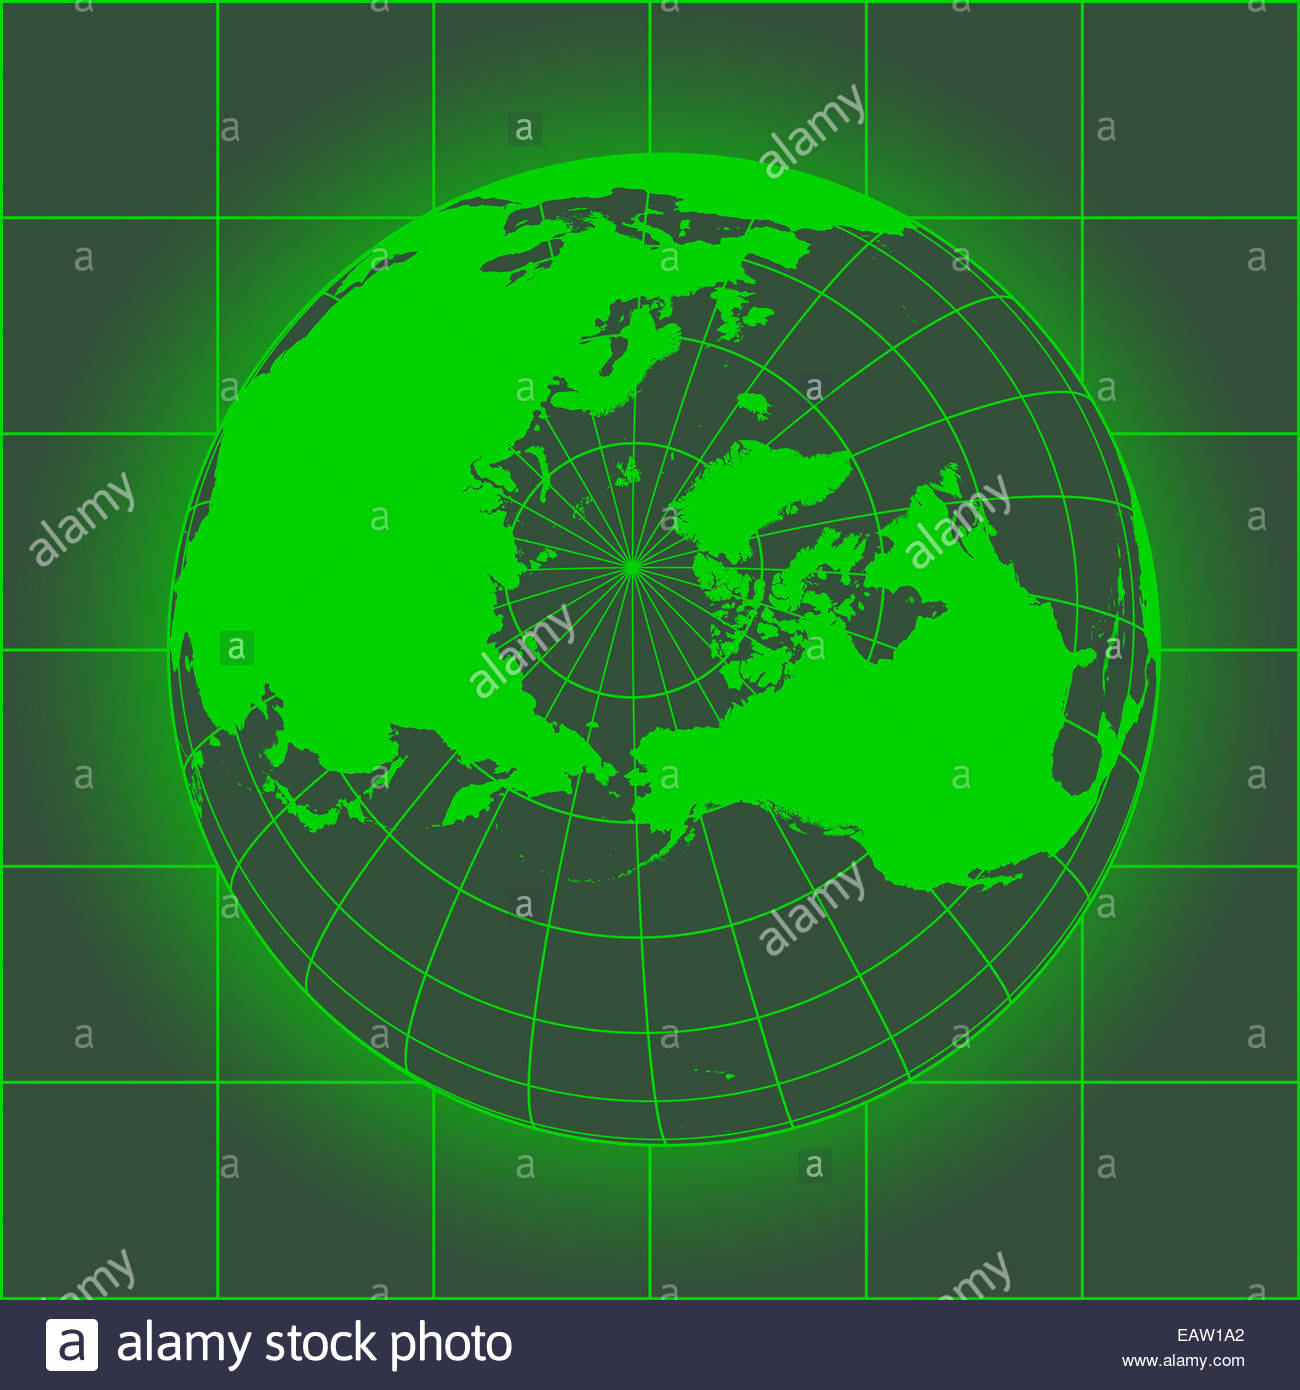 Green north pole map europe greenland asia america russia green north pole map europe greenland asia america russia earth globe old style map of the world gumiabroncs Images